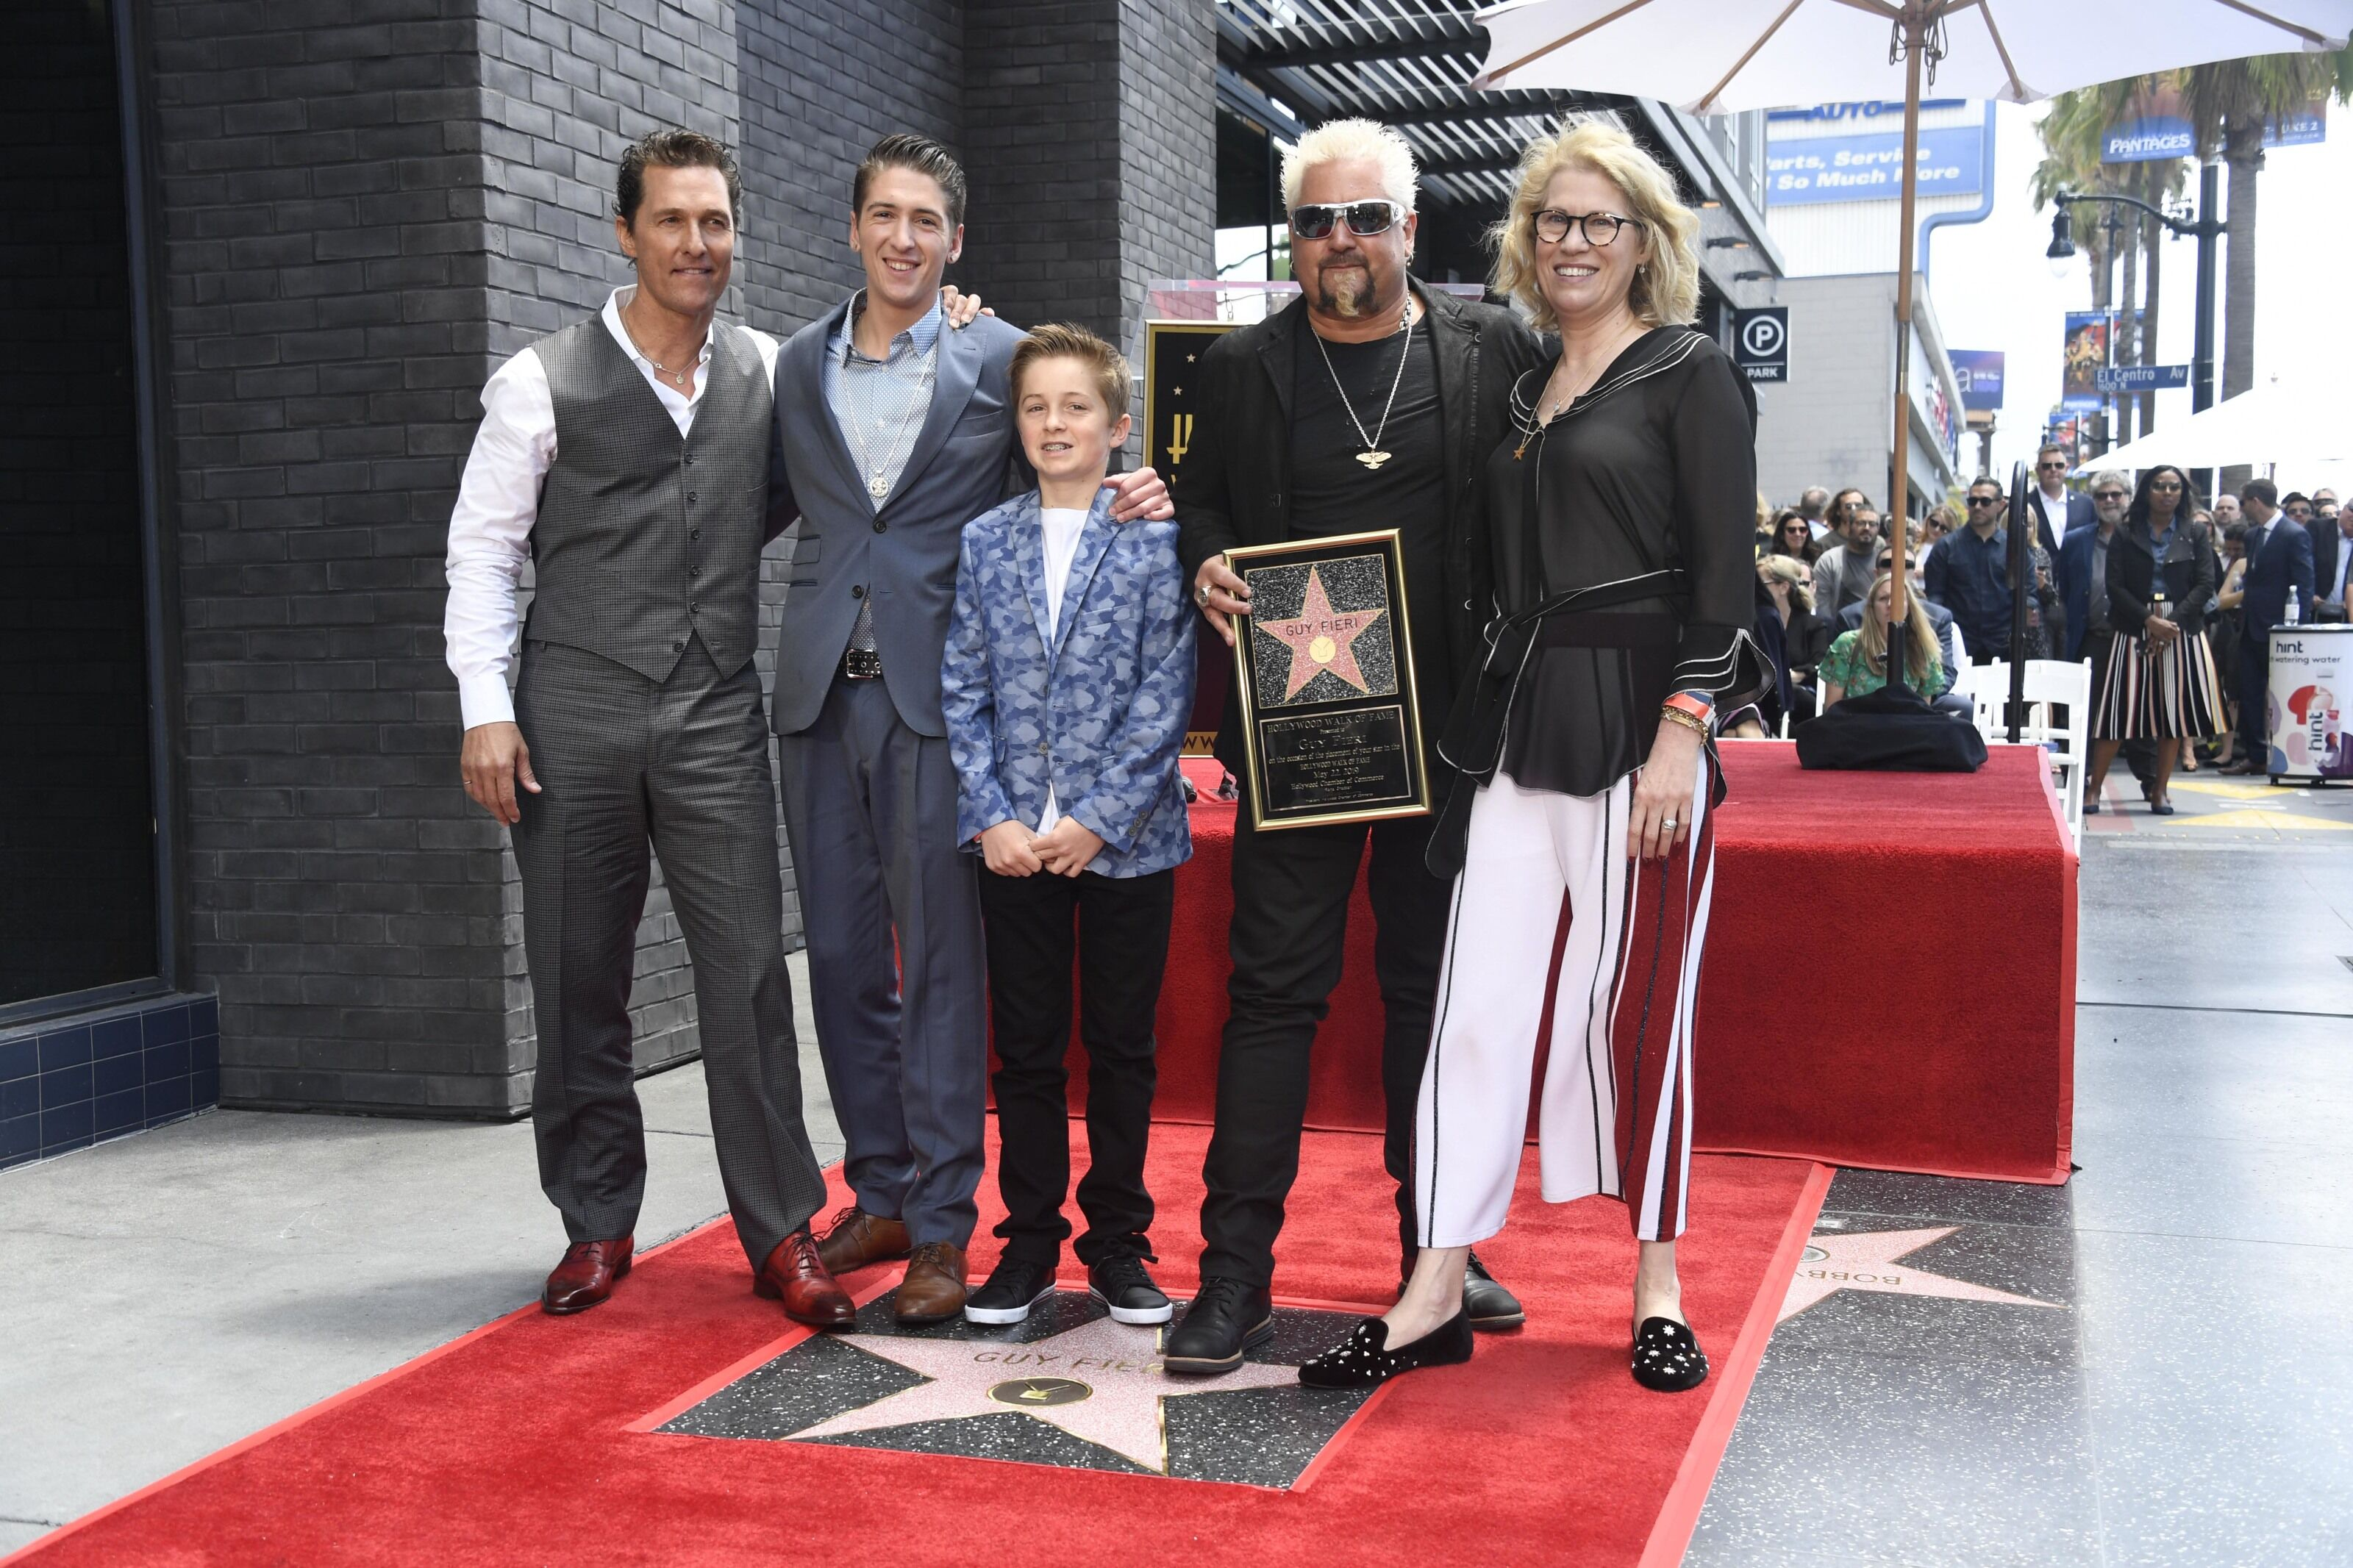 How many chefs have a star on the Hollywood Walk of Fame?